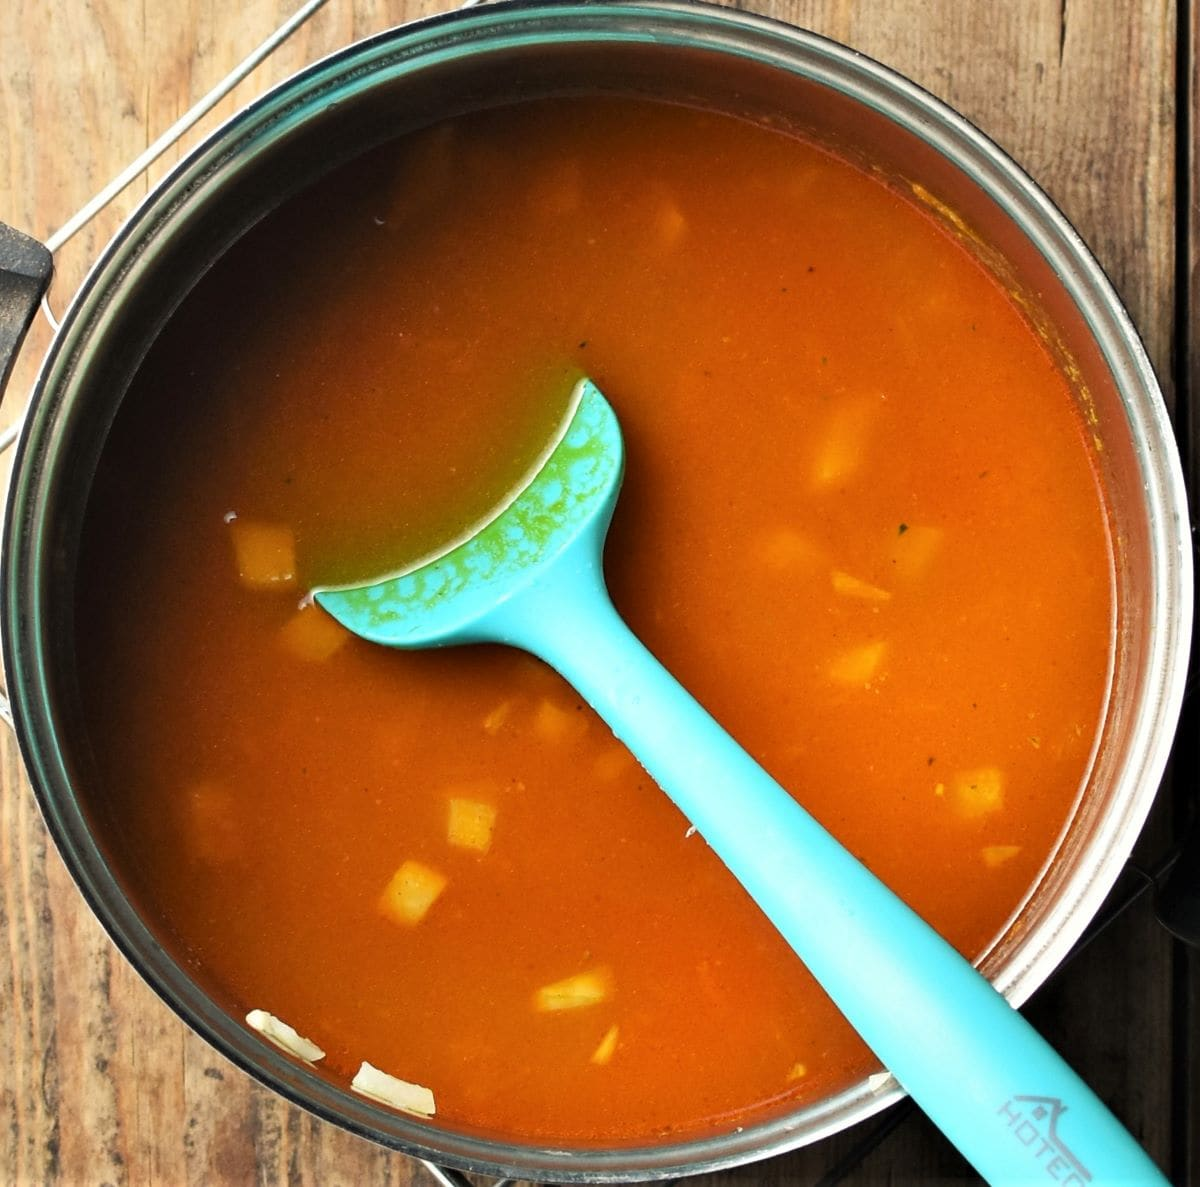 Cooking dhal in saucepan with green spoon.